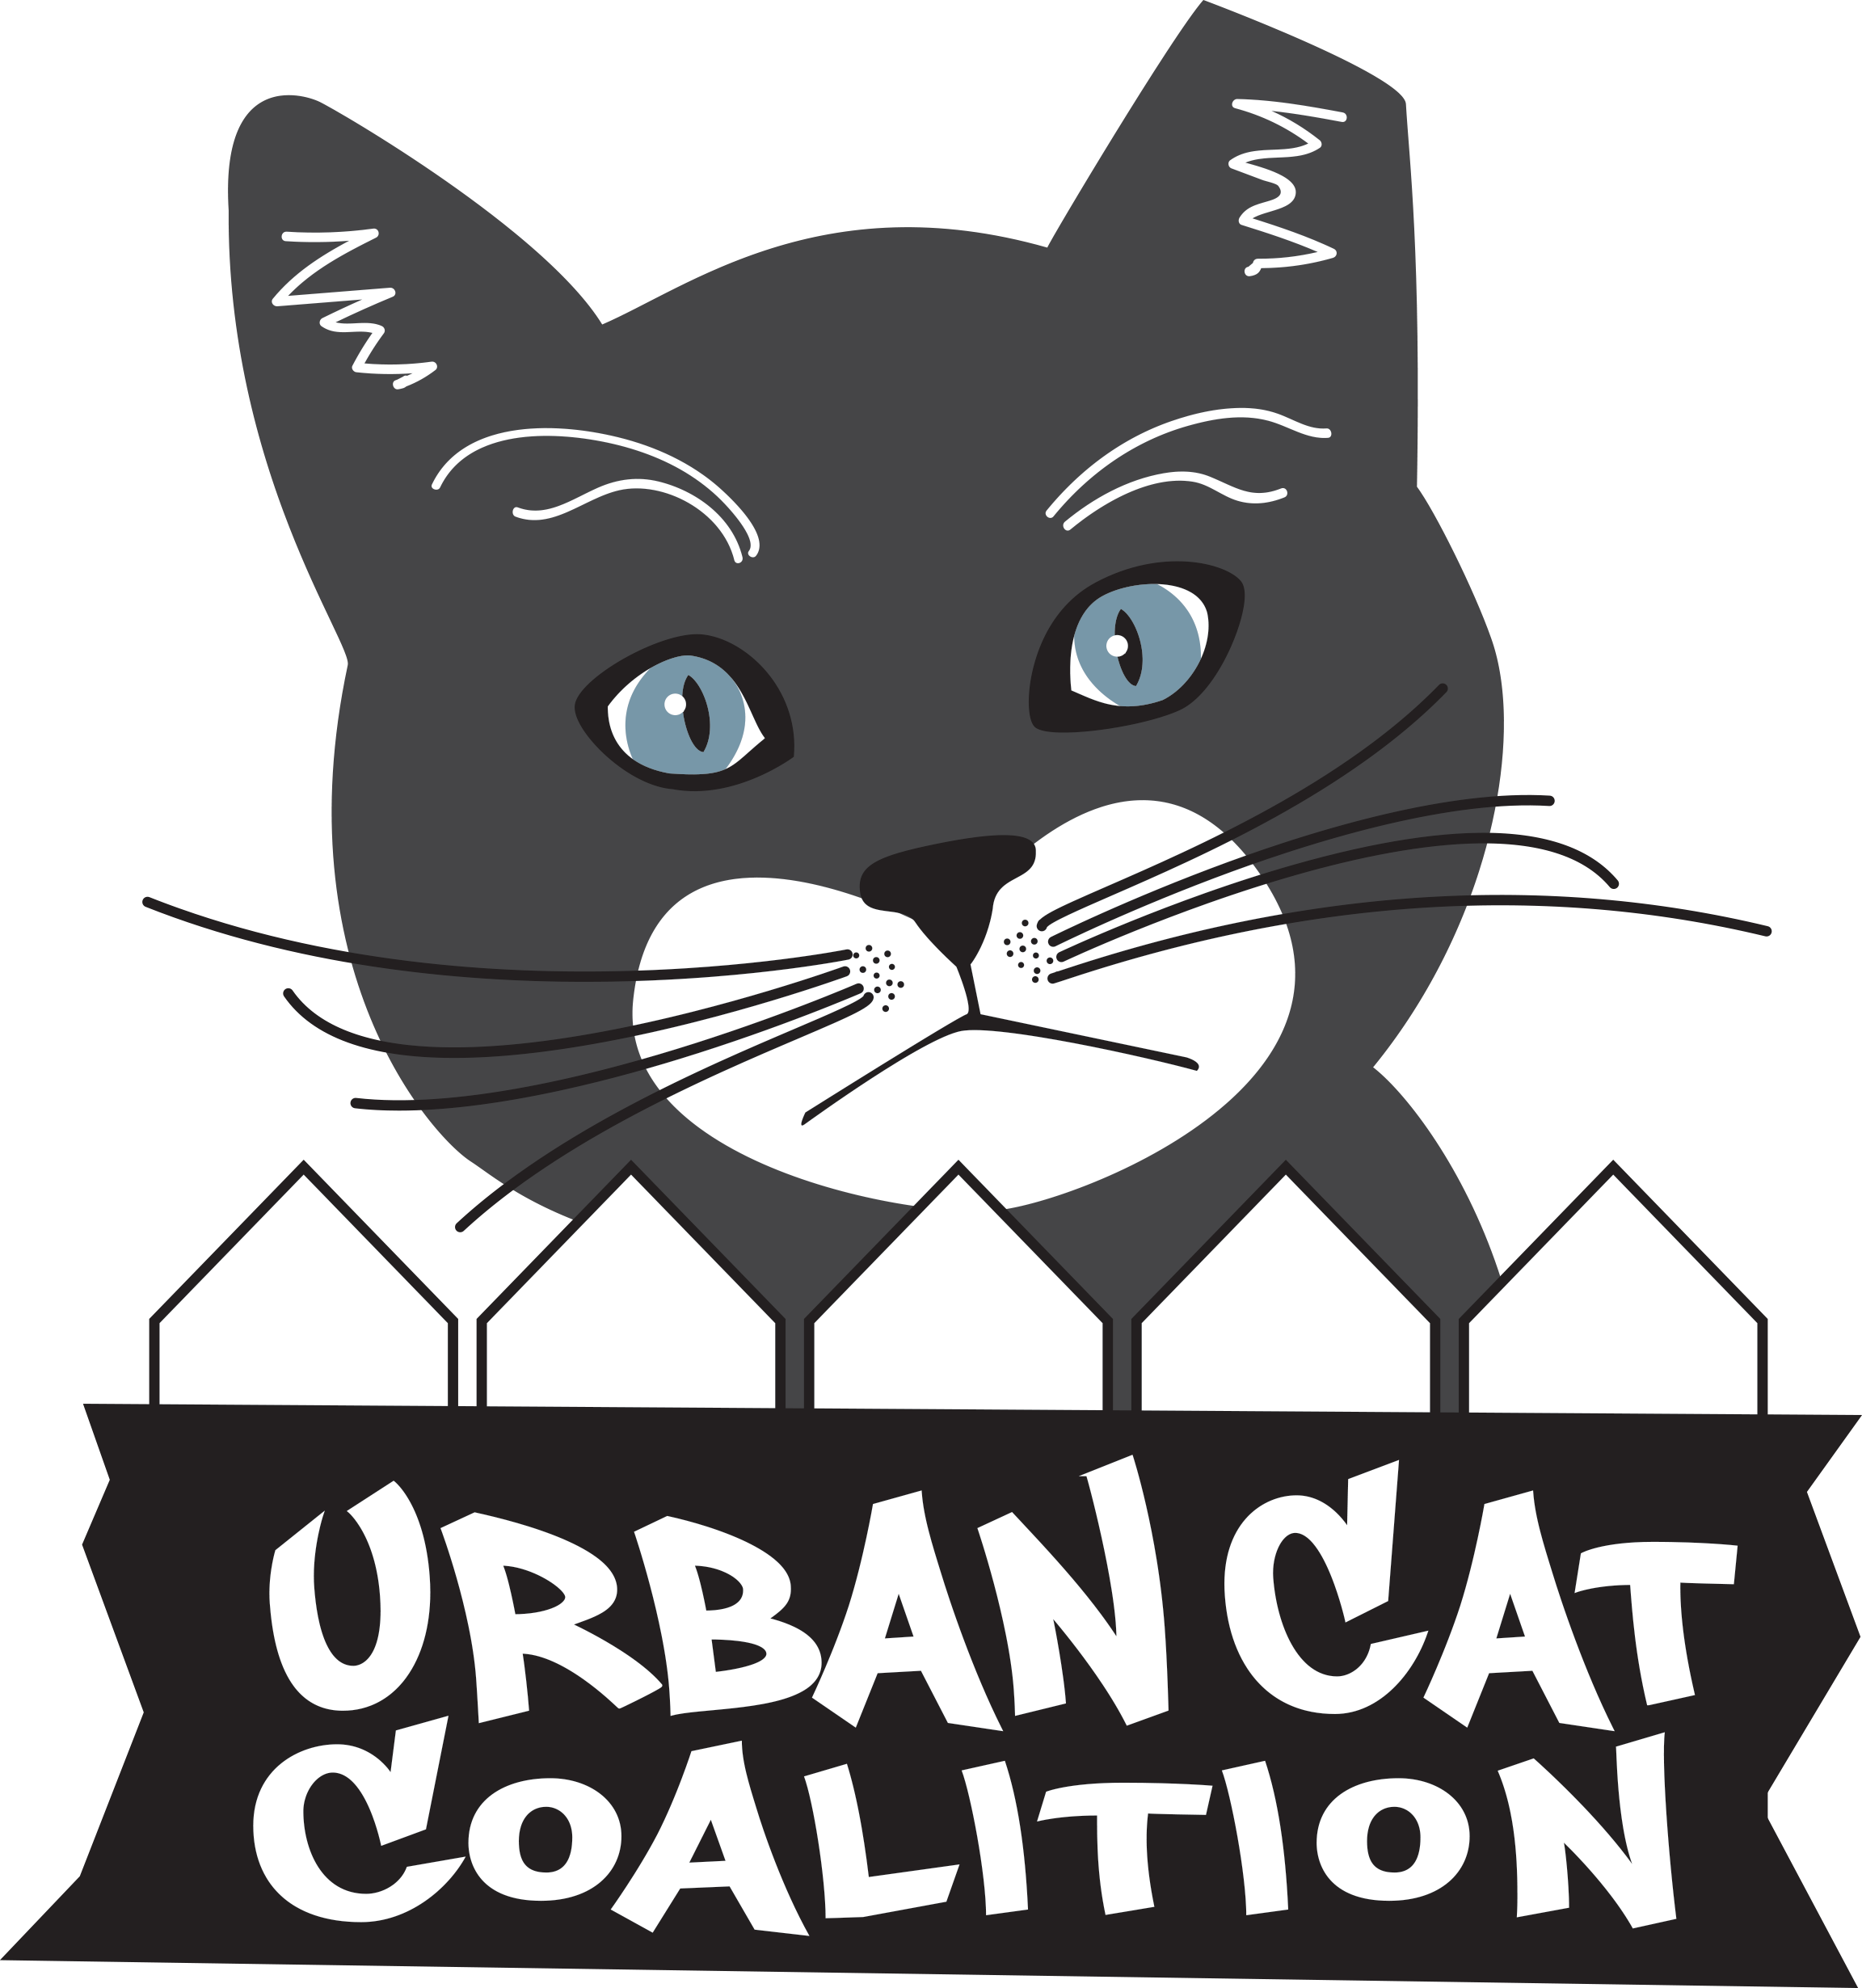 Urban Cat Coalition